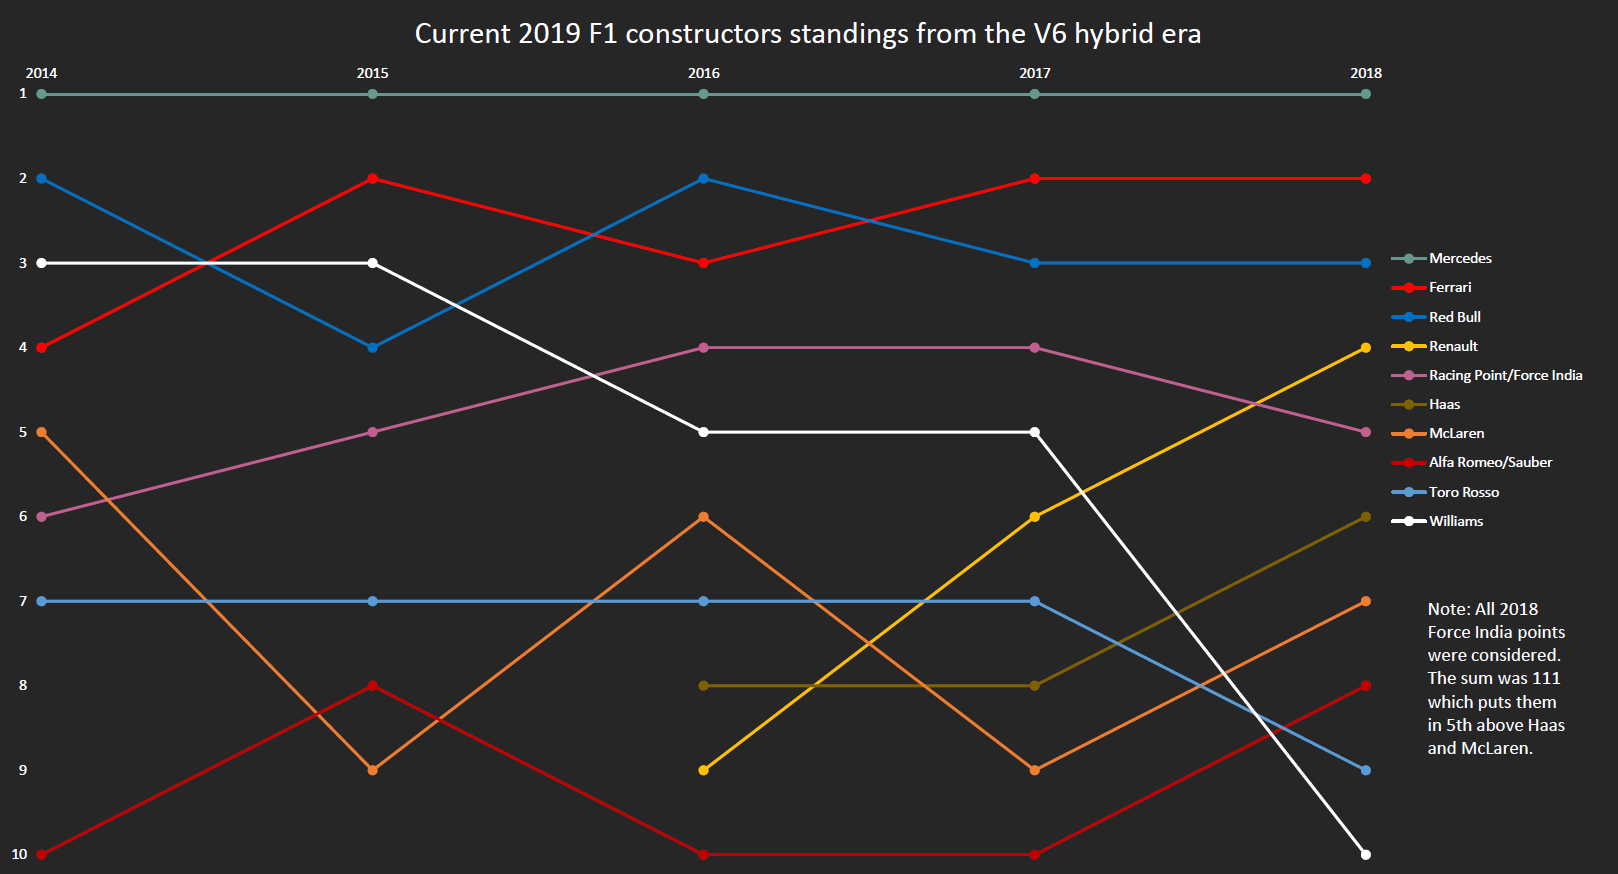 hight resolution of mediachart current constructors standings from the v6 hybrid era 2014 2018